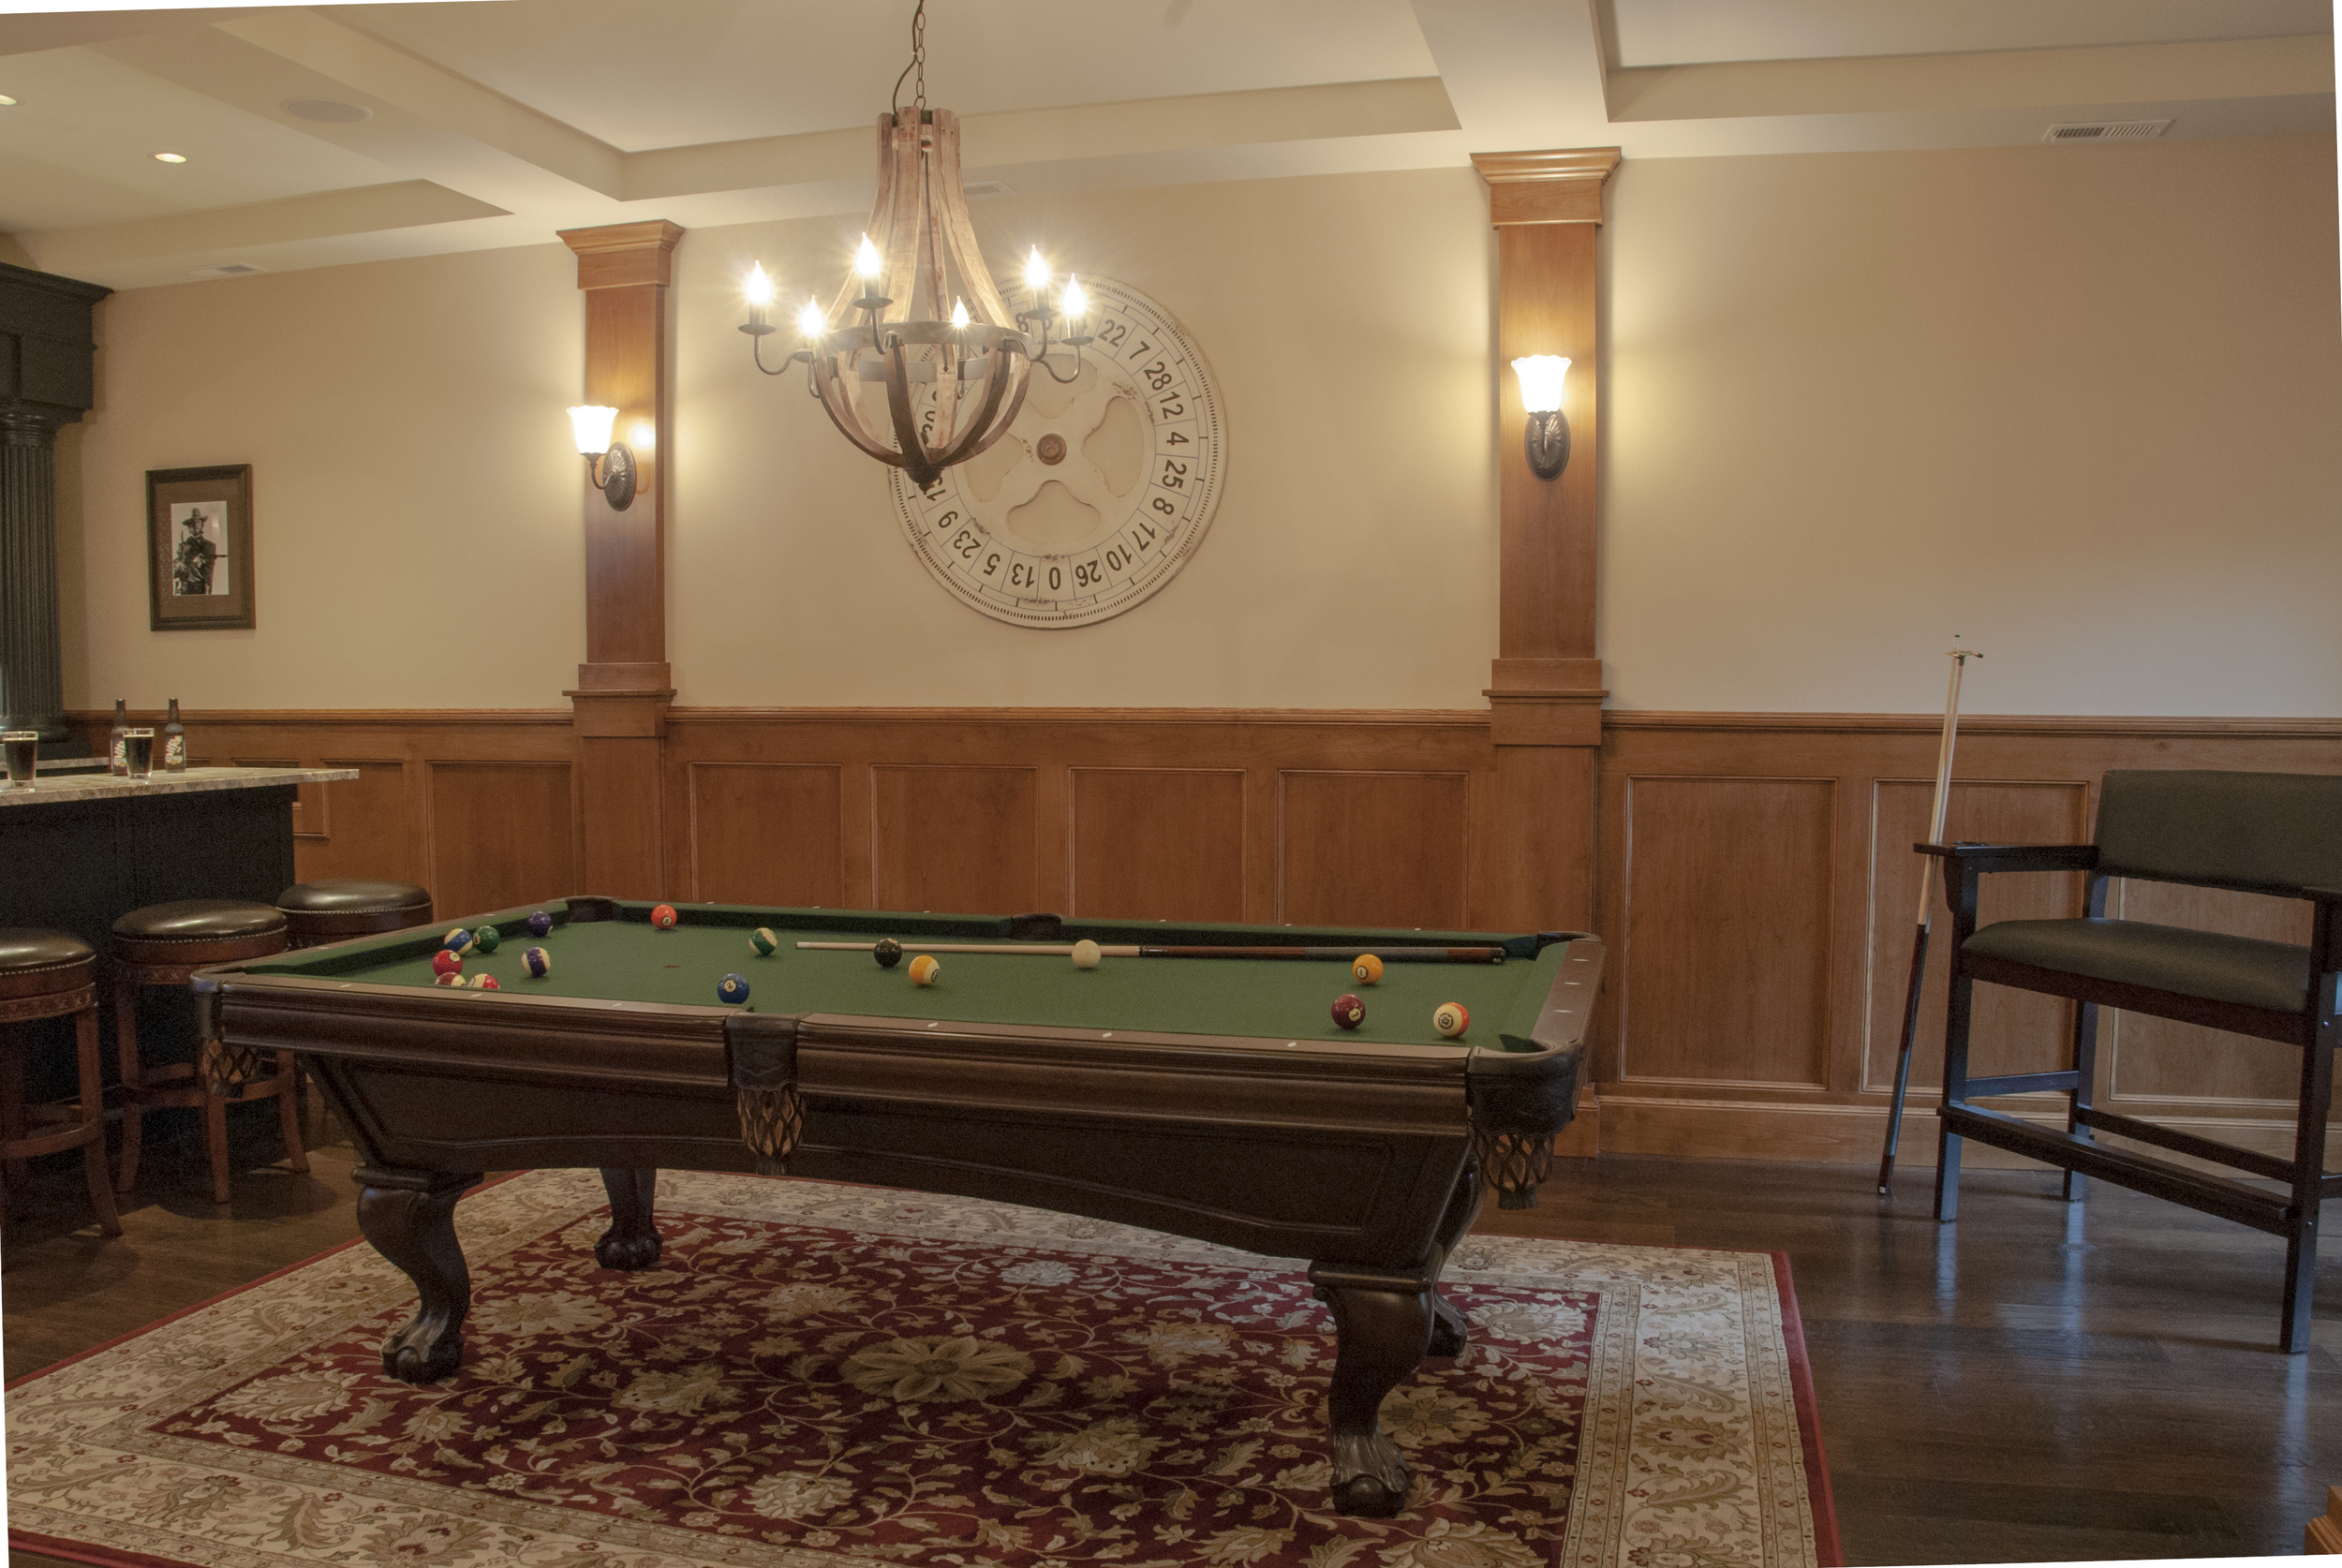 A classic Brunswick walnut club style pool table is one of the central features of the space.